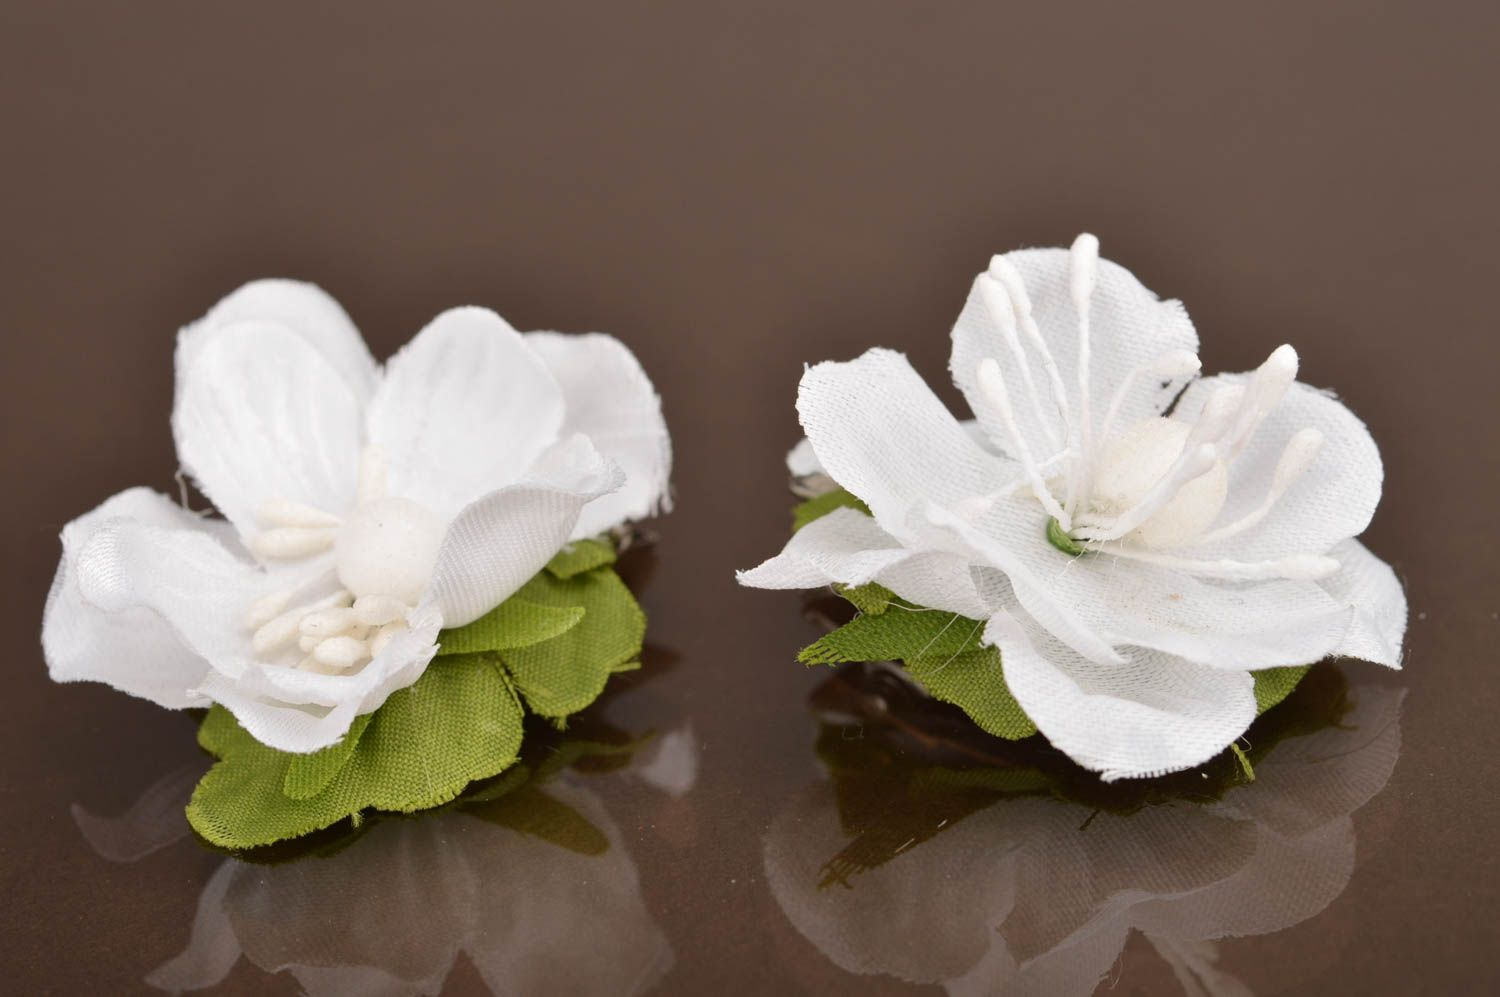 Madeheart set of 2 handmade white artificial flower hair clips for sets set of 2 handmade white artificial flower hair clips for children madeheart izmirmasajfo